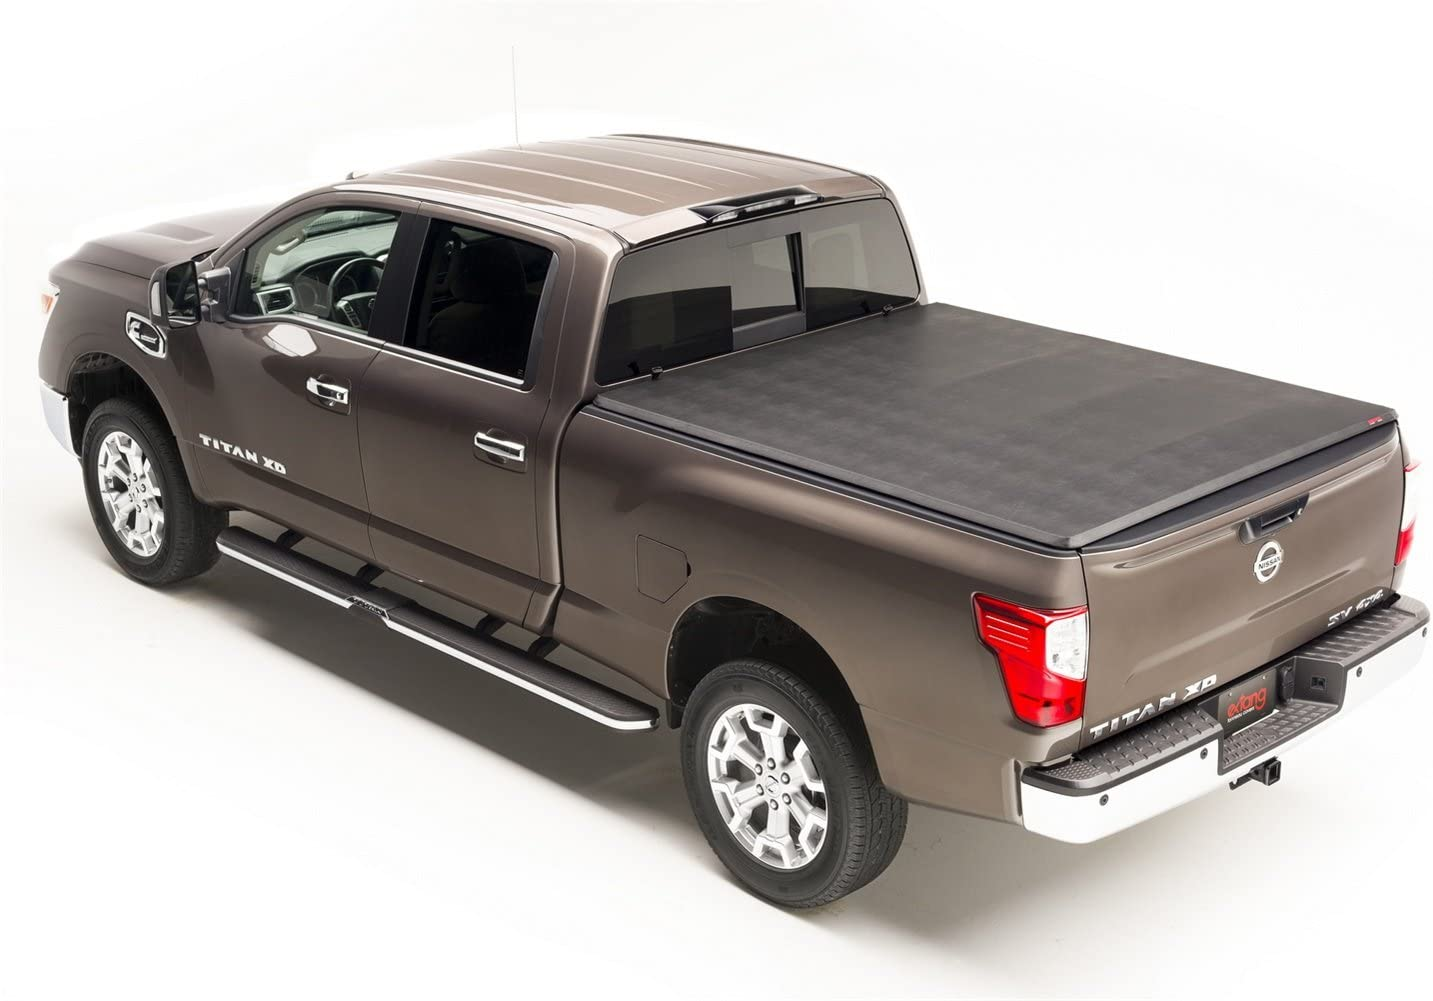 Made In The Usa Fits 2004 2015 Nissan Titan W Out Rail System 5 5 Bed 59504 Gator Etx Soft Tri Fold Truck Bed Tonneau Cover Truck Bed Tailgate Accessories Tonneau Covers